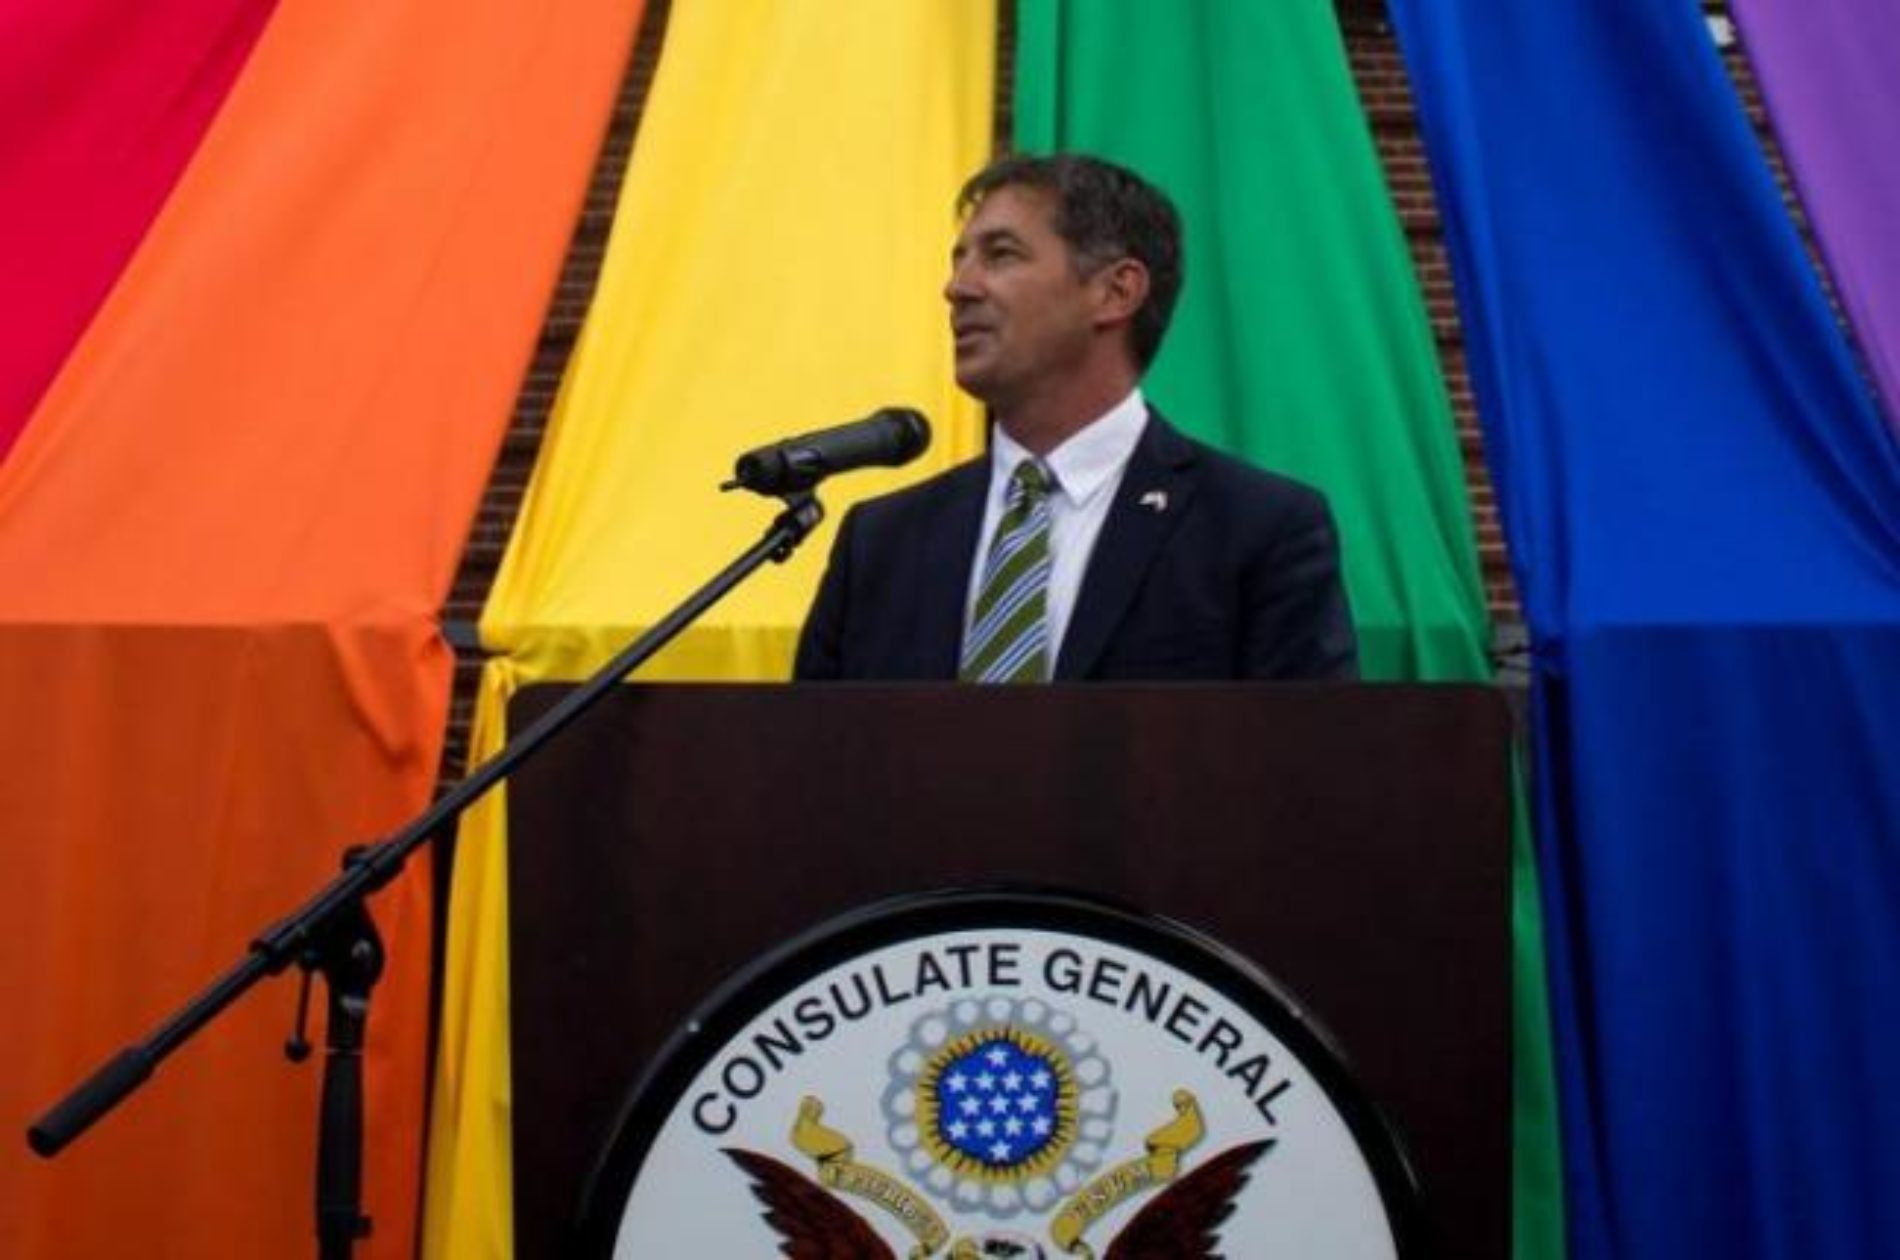 What Bisi Alimi Has To Say About The United States' Special Envoy for LGBT Human Rights